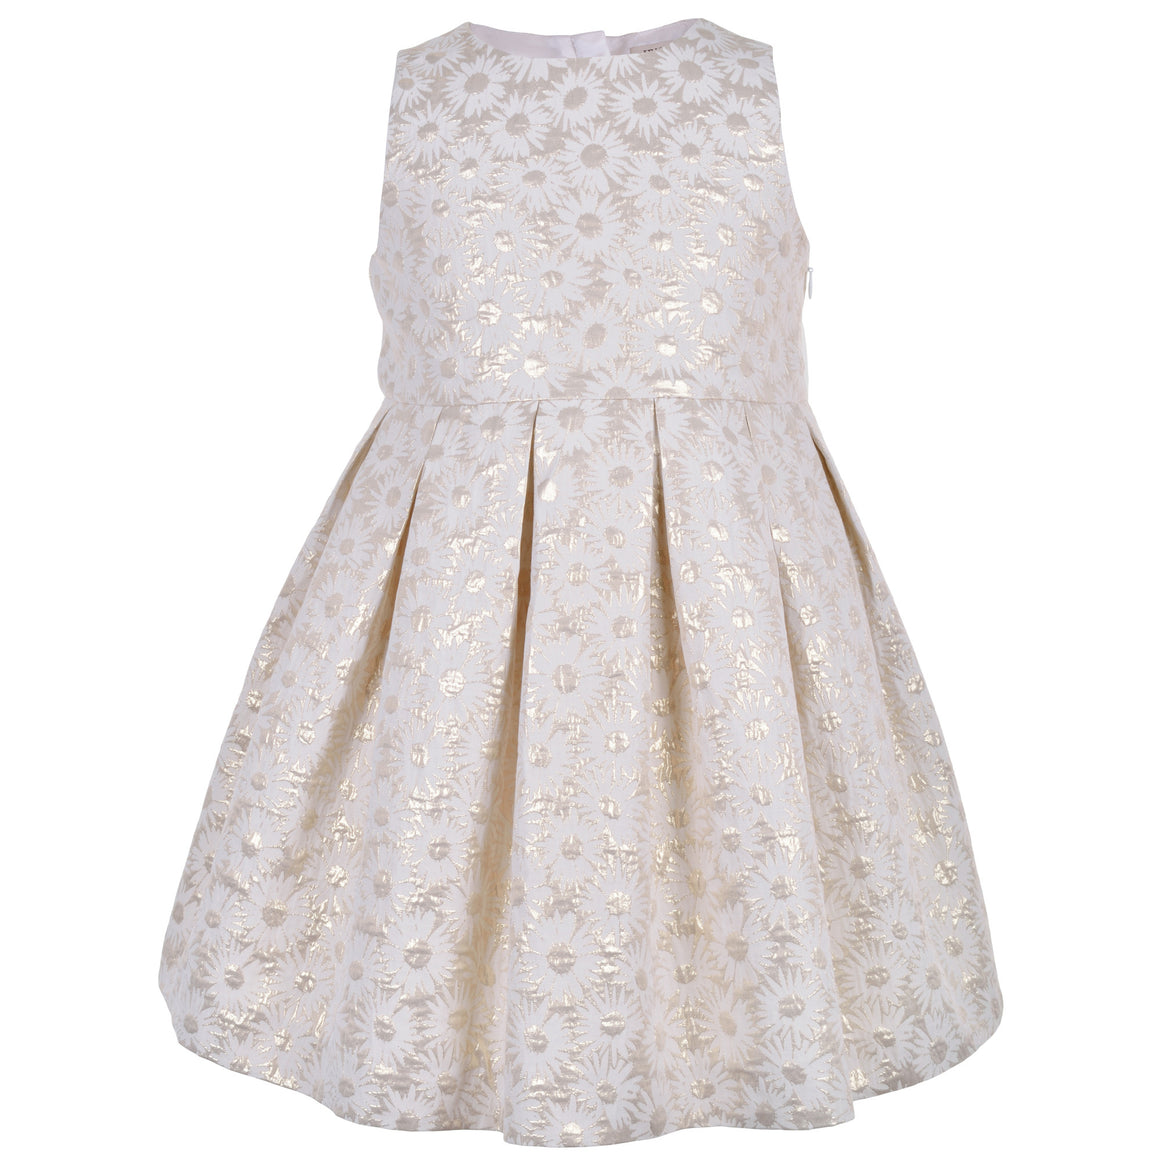 Hucklebones - Girls Metallic Daisy Bodice Dress | Party Dresses | Bon Bon Tresor